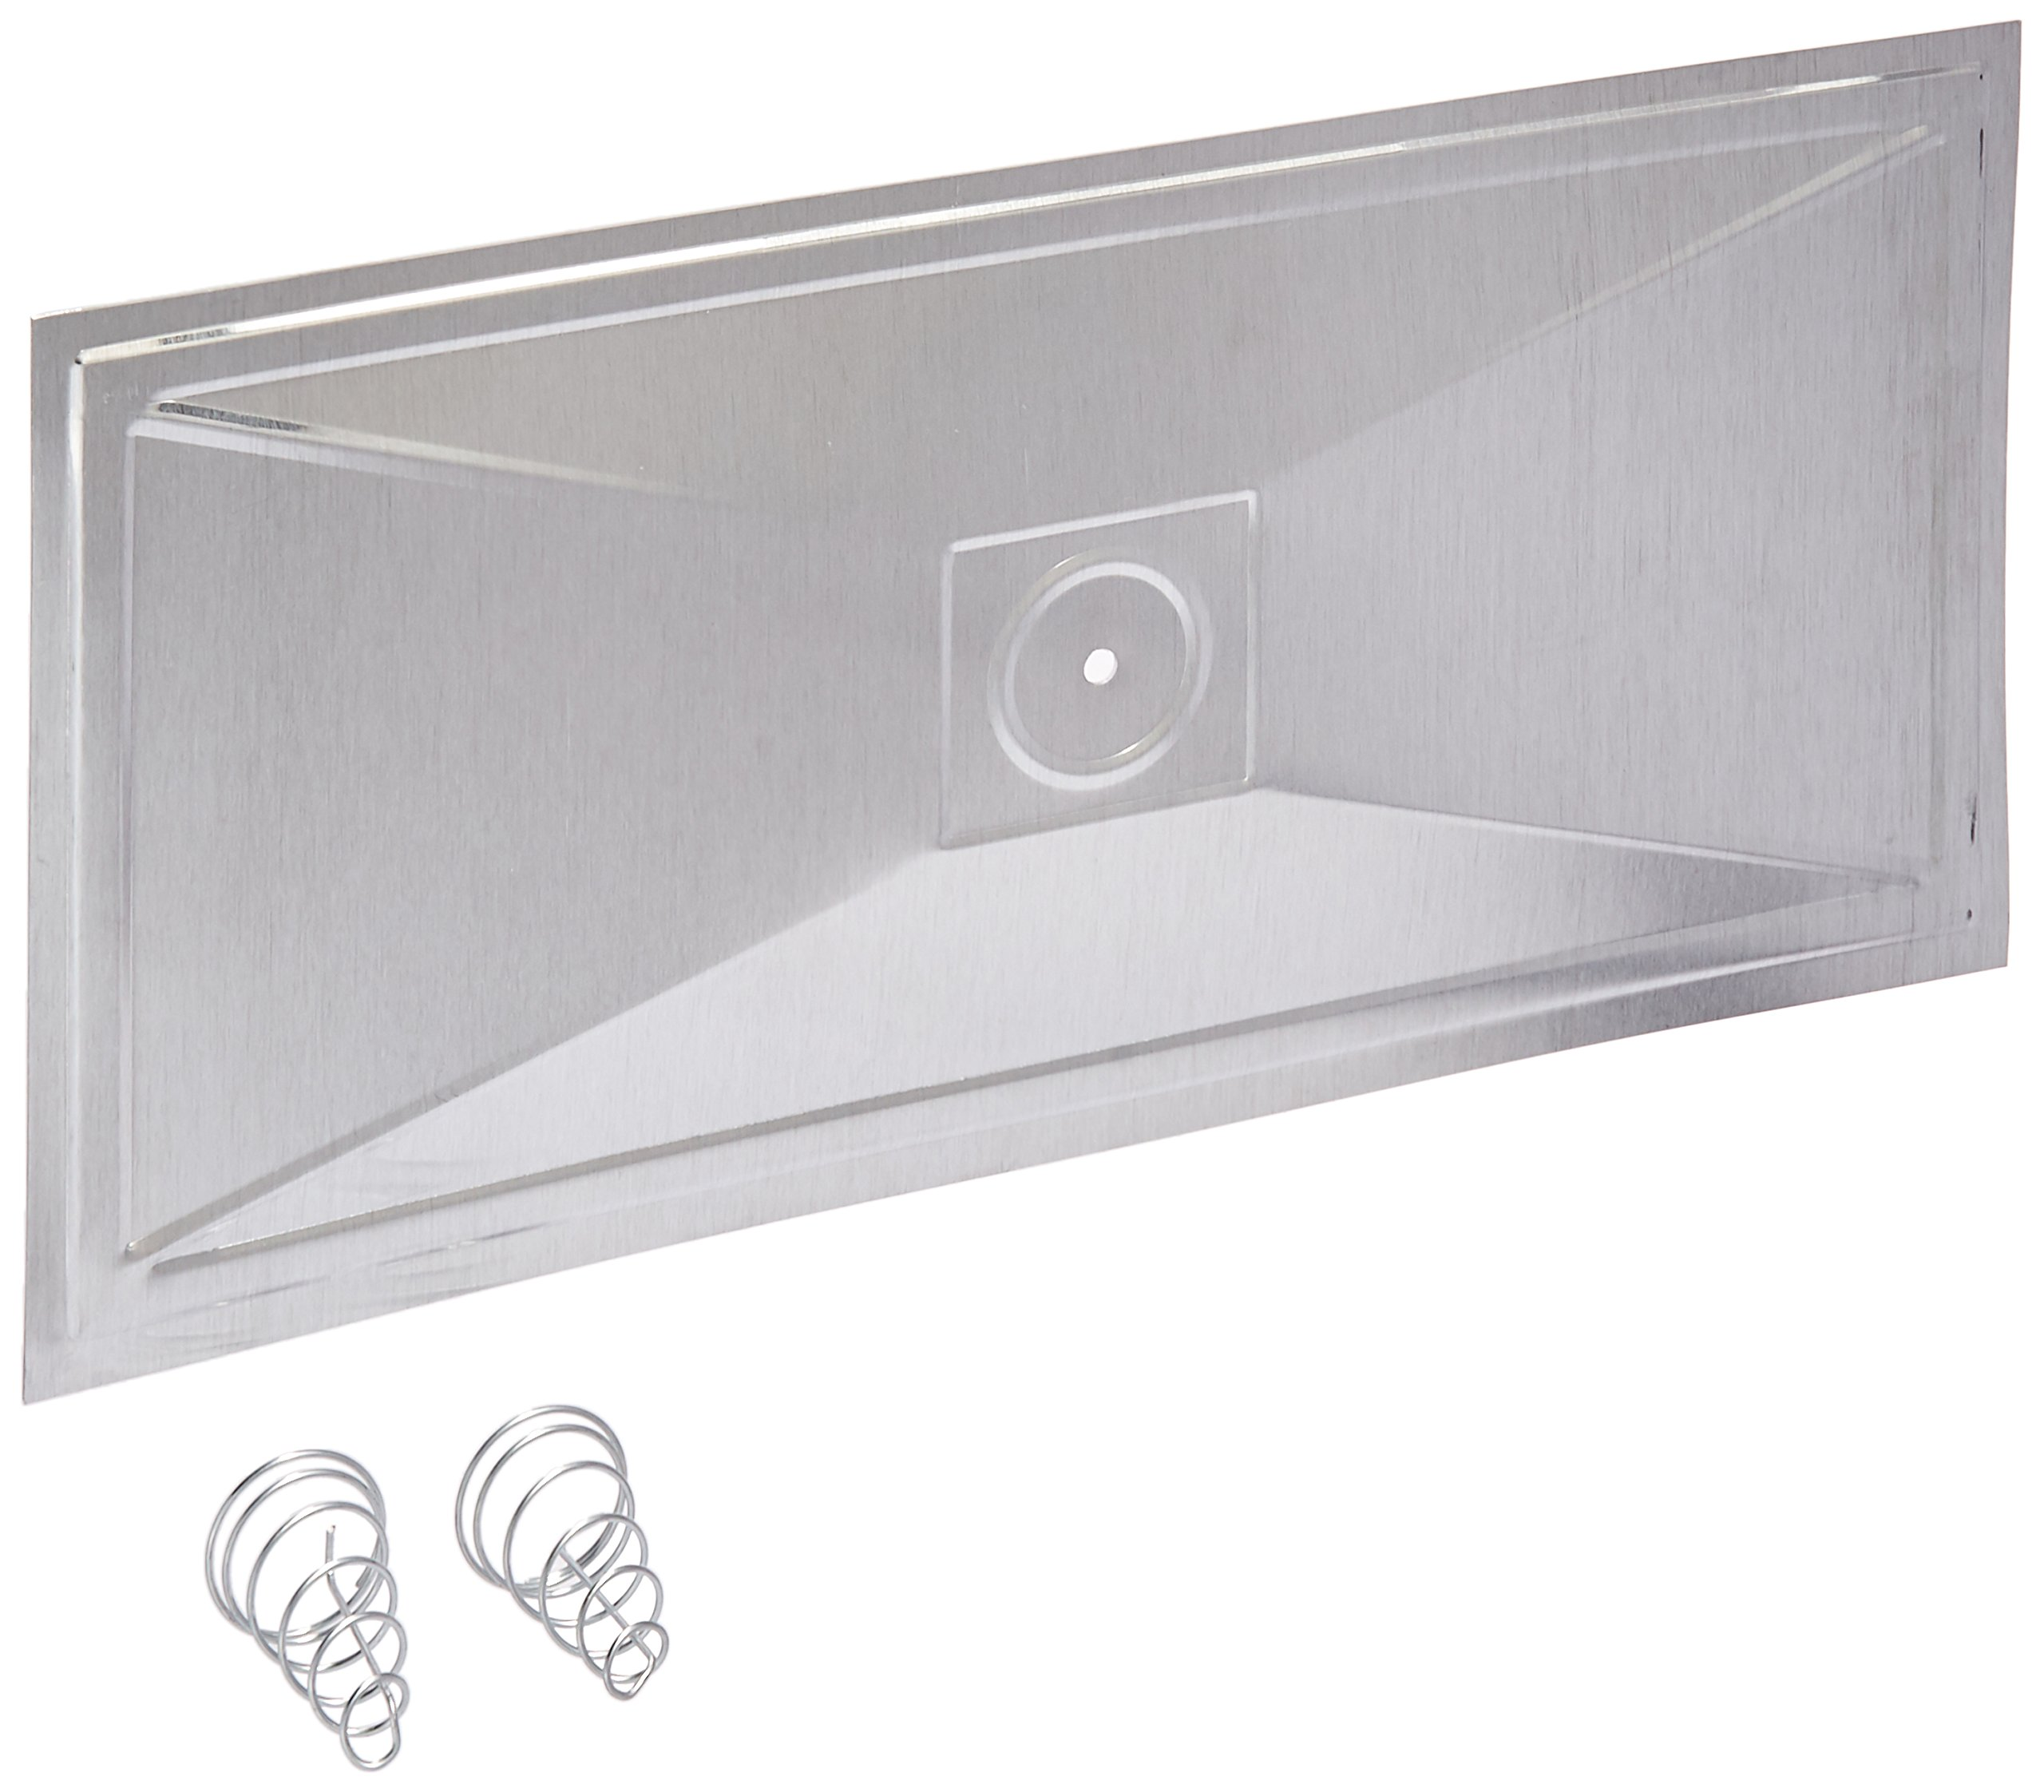 LL BUILDING PRODUCTS FVC 168 2PK Found Vent Cover